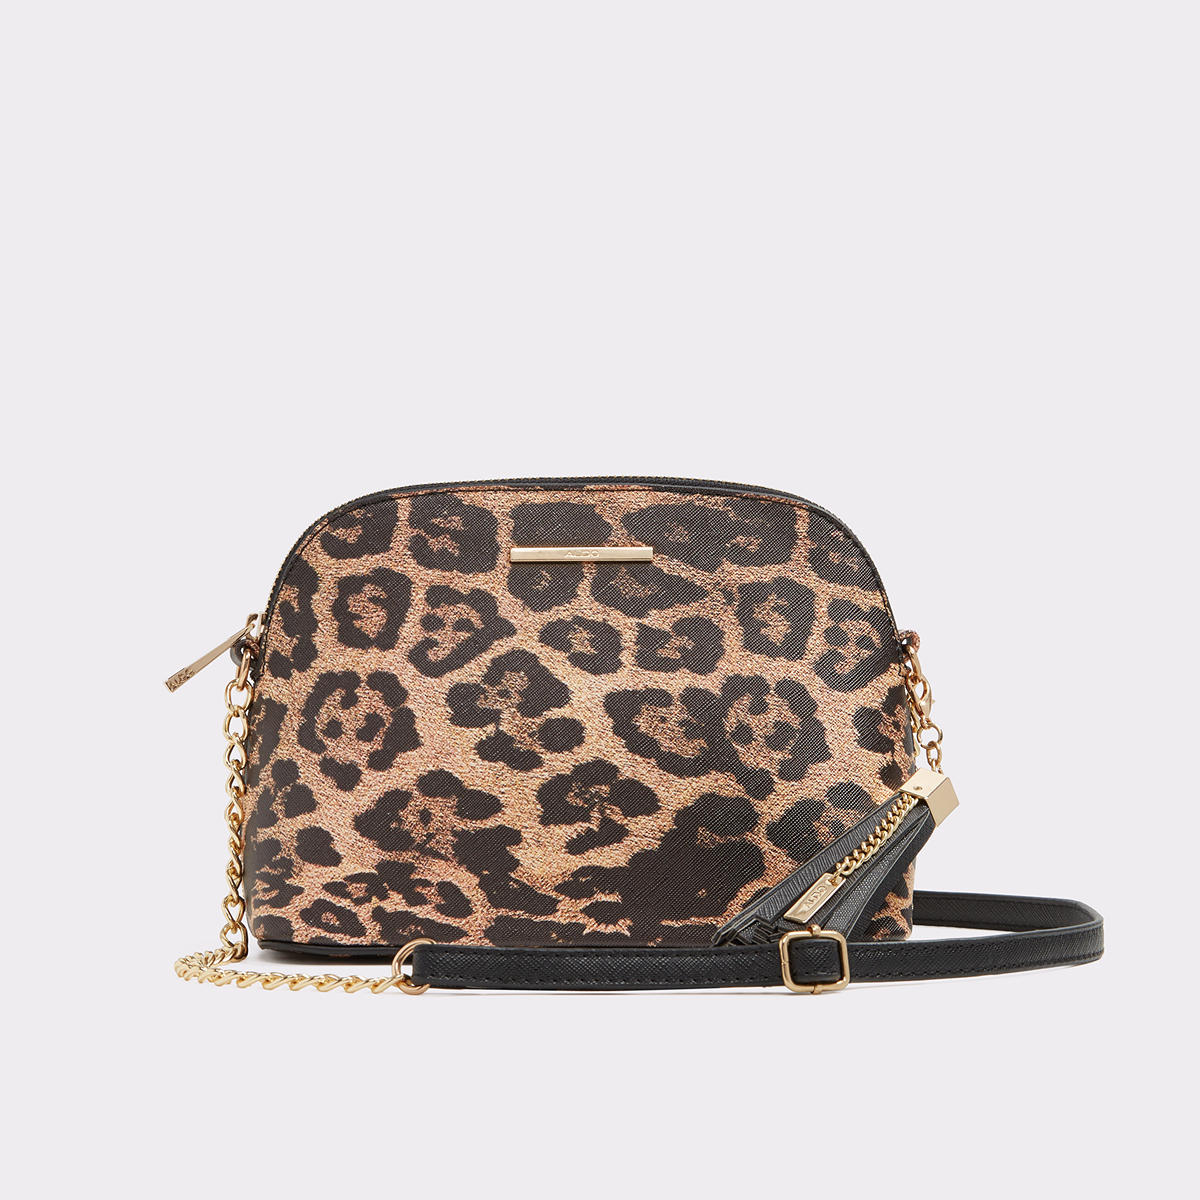 Elroodie Brown Misc. Women s Crossbody  056663c4787b5